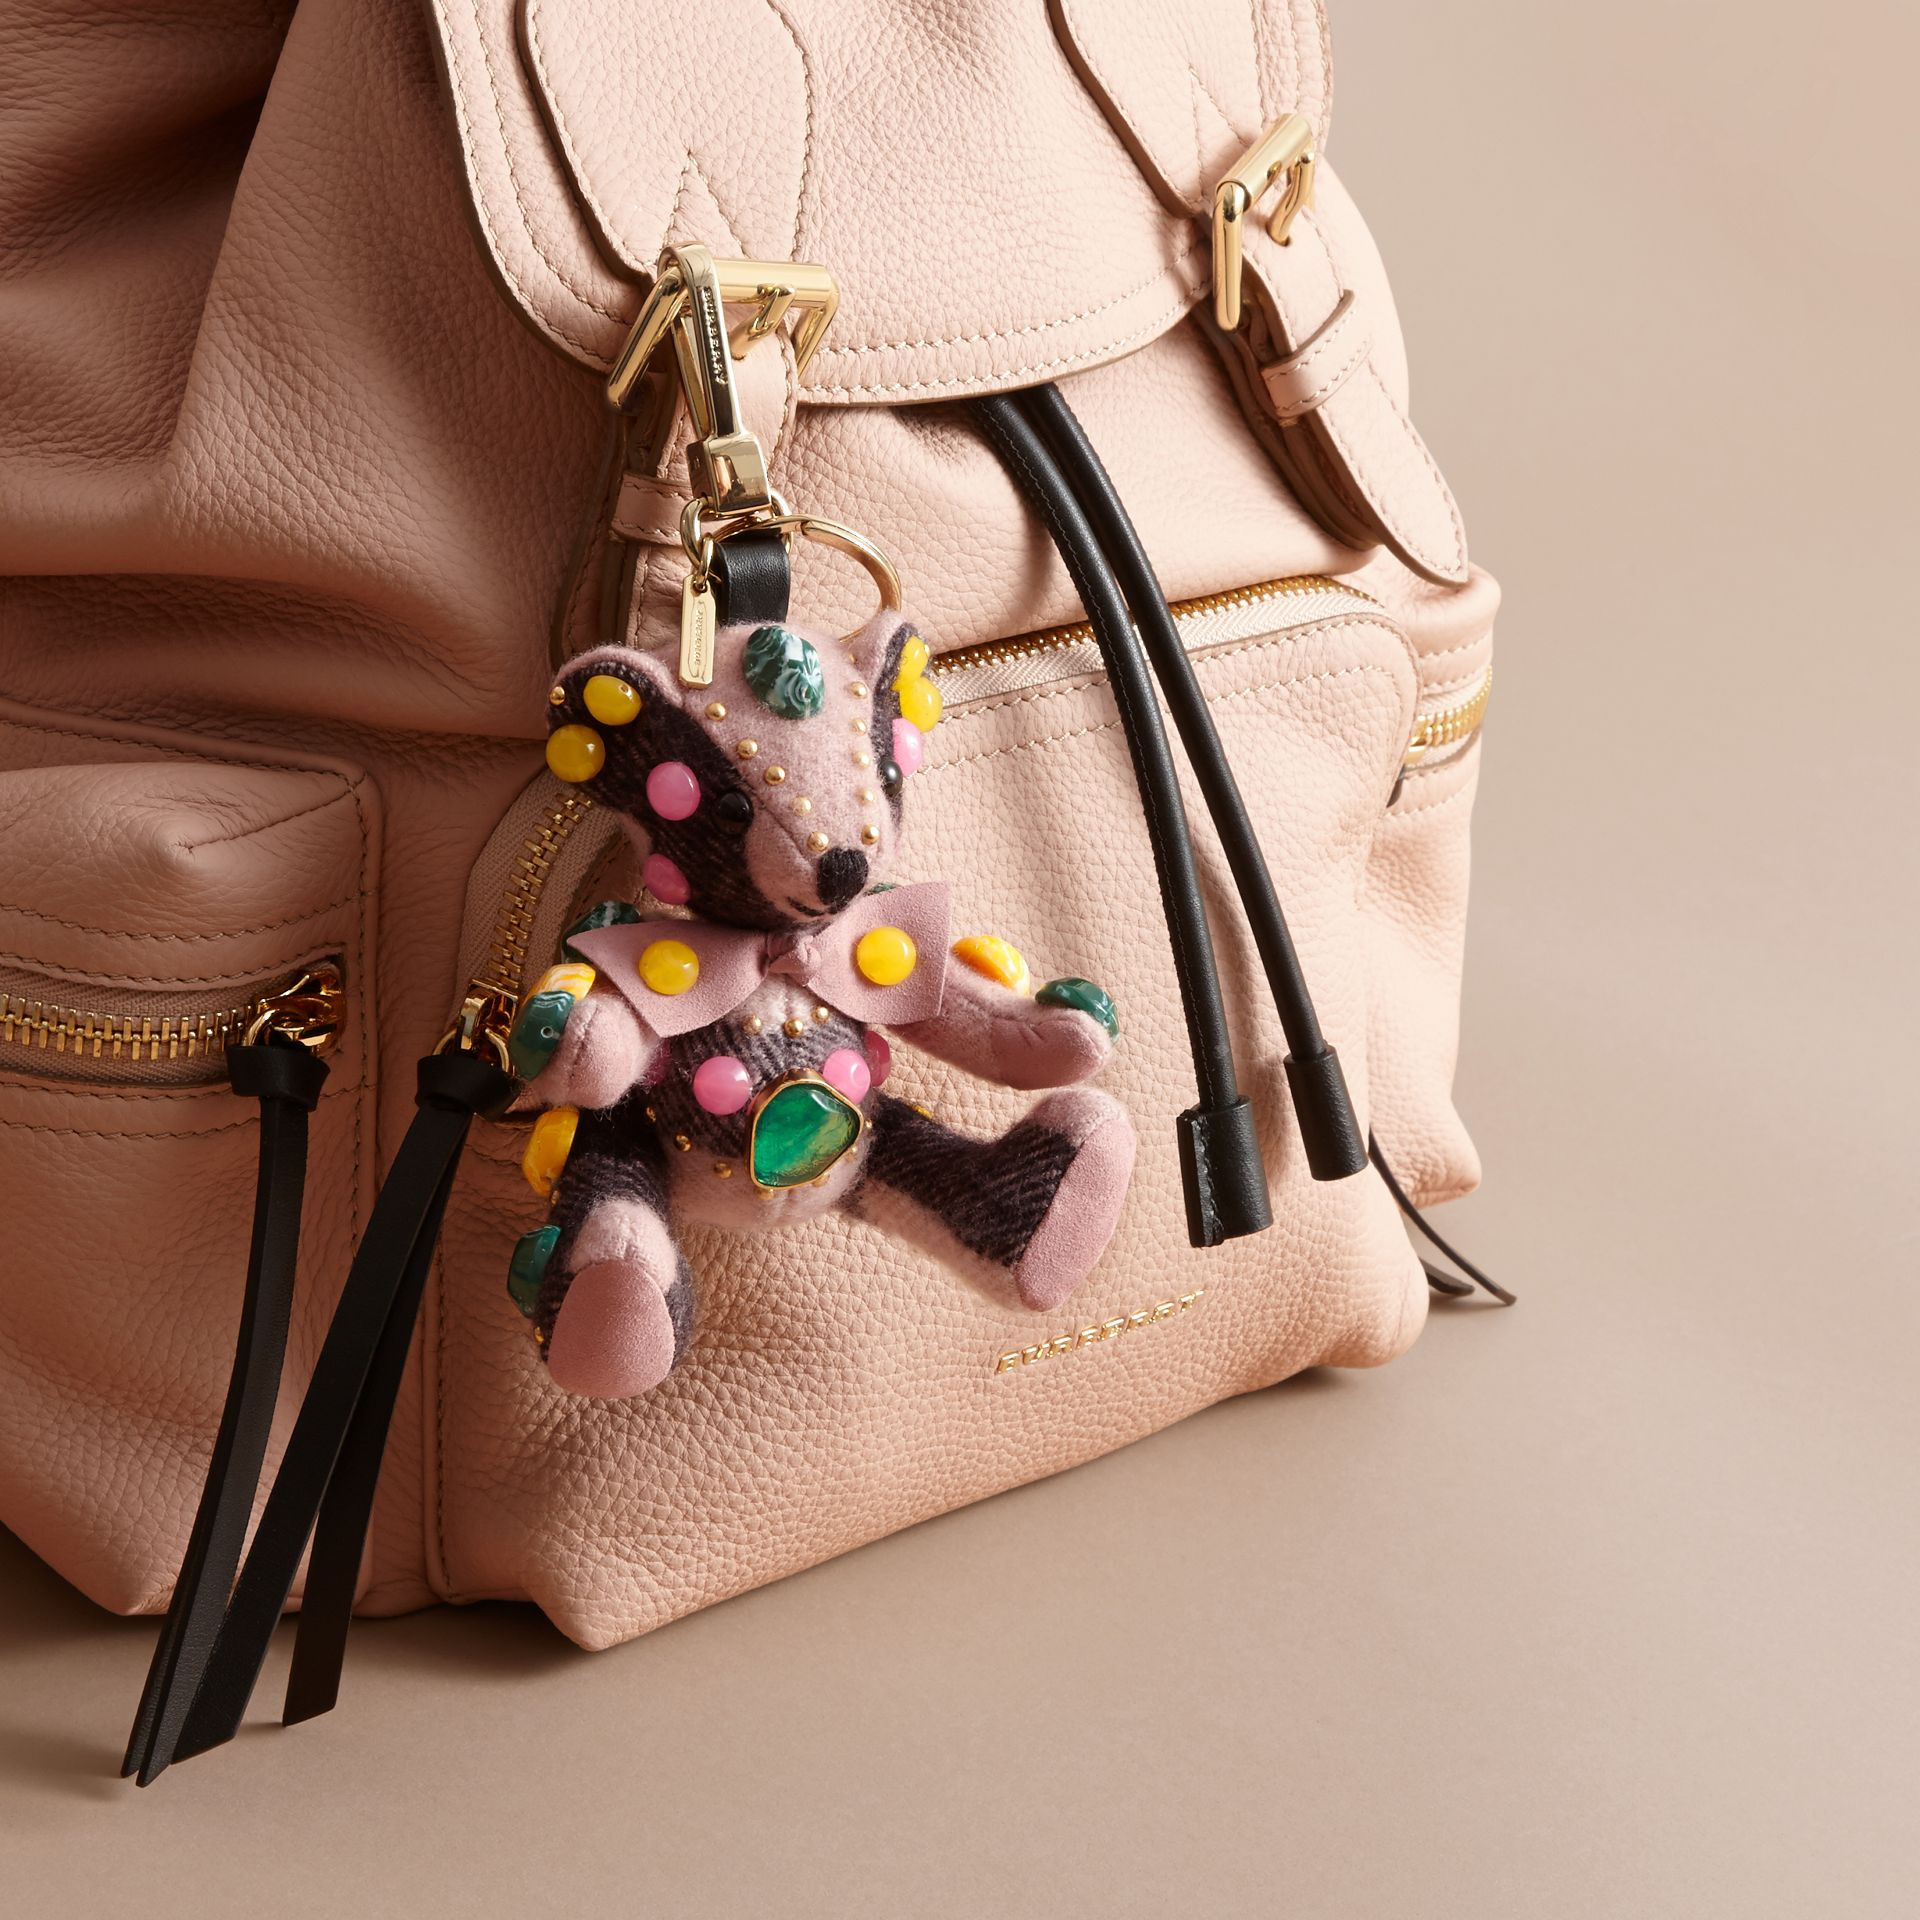 Thomas Bear Charm in Gem-embellished Check Cashmere in Ash Rose - Women | Burberry - gallery image 3